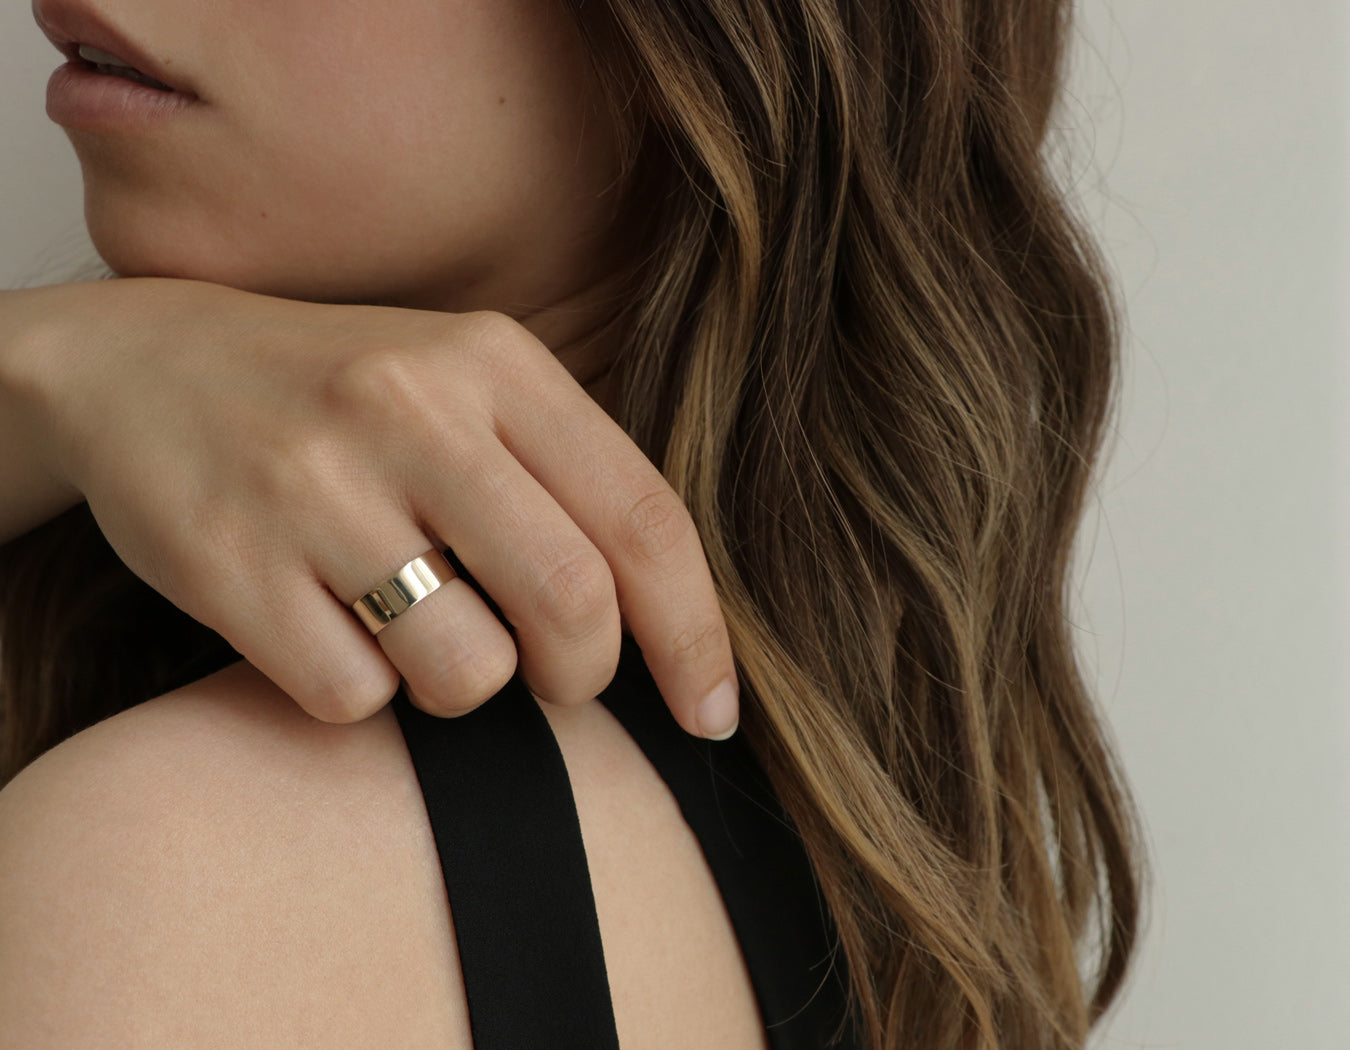 Model wearing Thick Stacker Ring 14k solid yellow gold geometric minimalist band